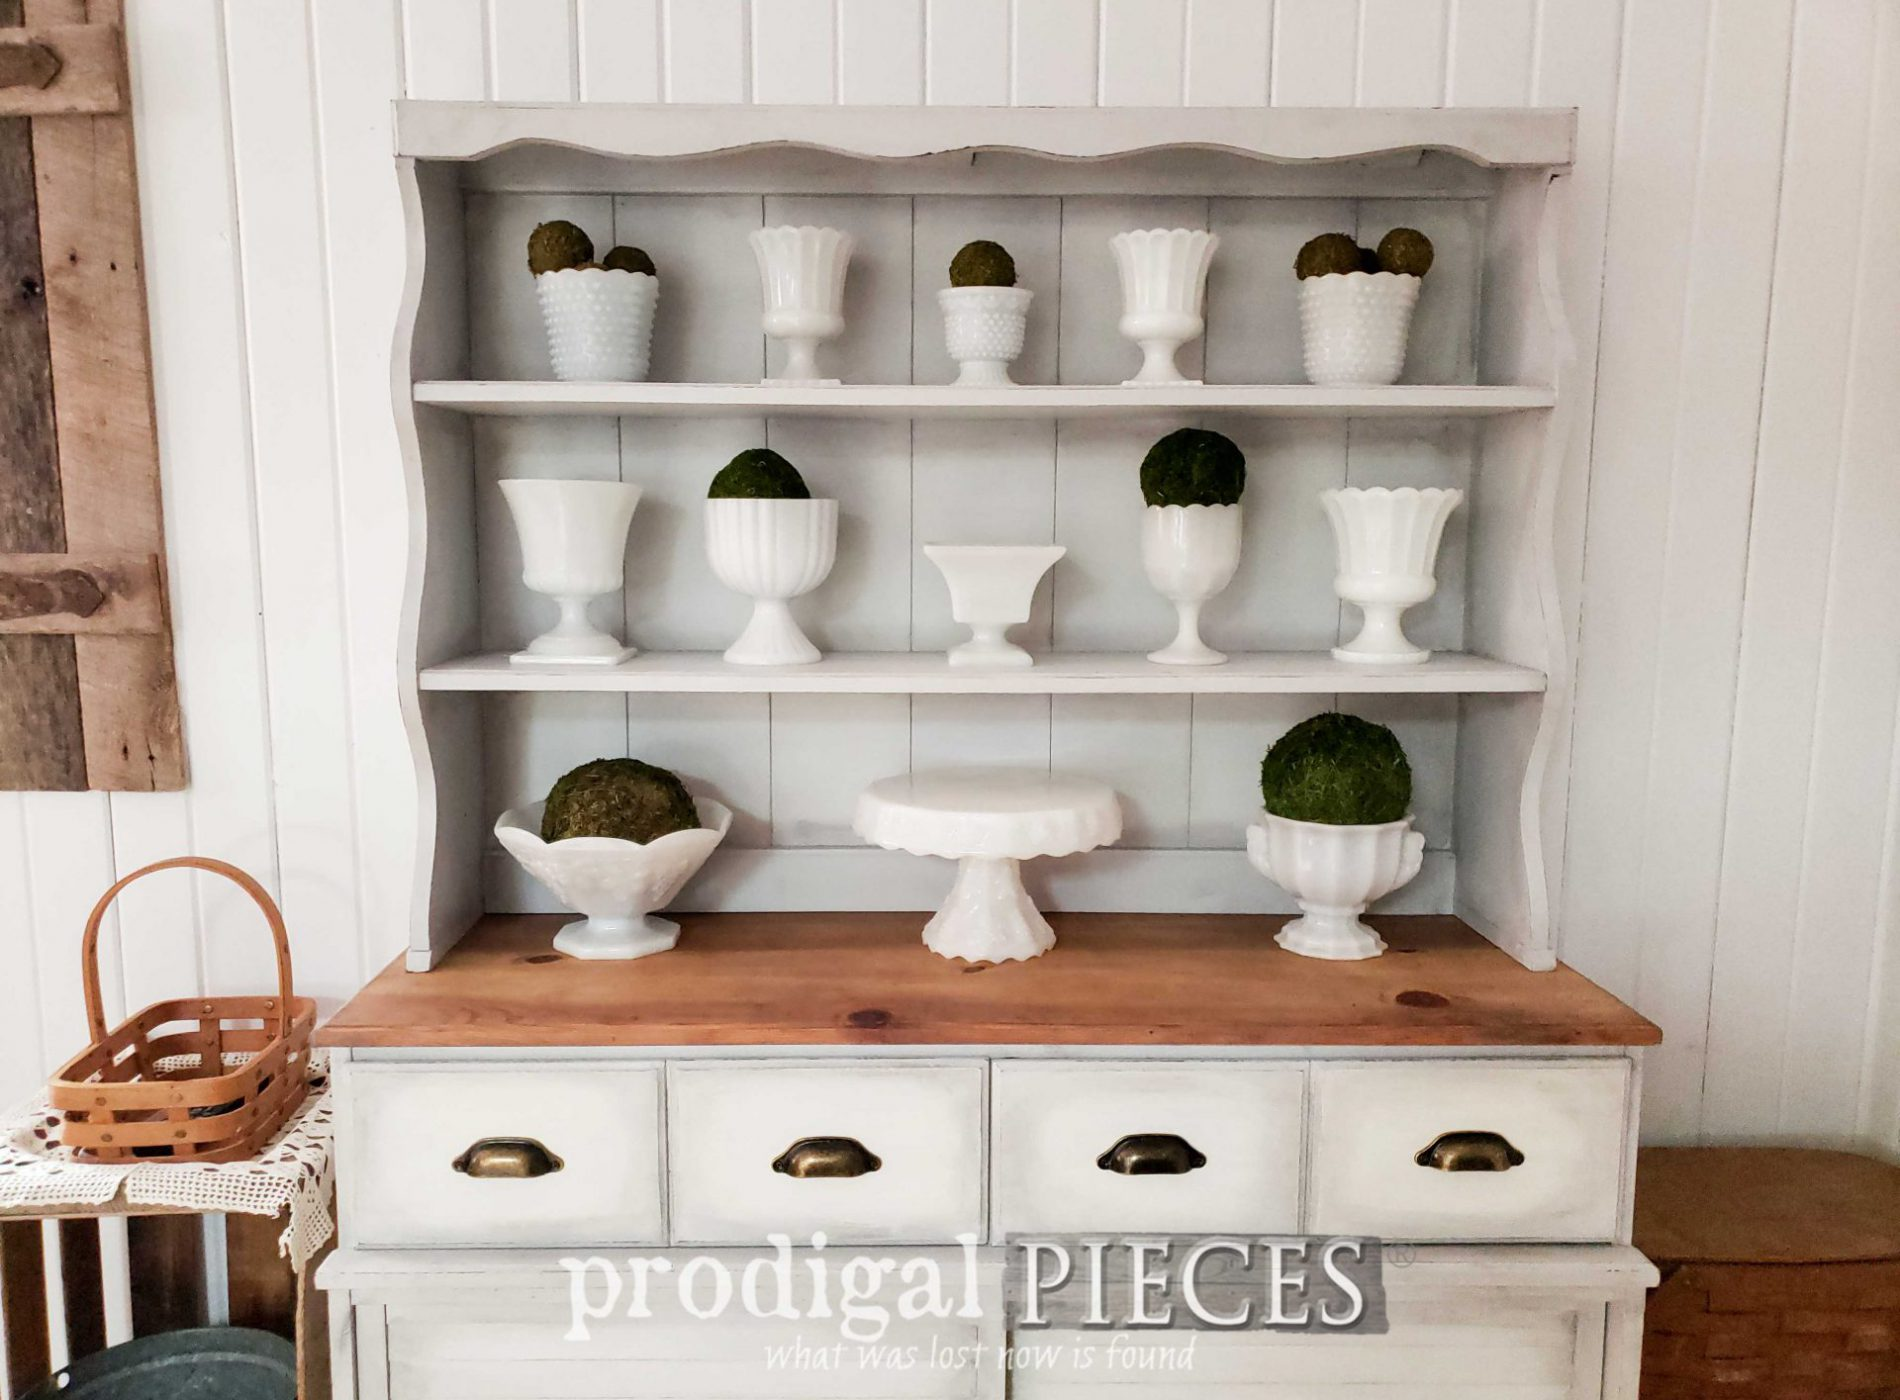 Featured Vintage Farmhouse Hutch Makeover & Revival by Larissa of Prodigal Pieces | prodigalpieces.com #prodigalpieces #home #farmhouse #furniture #diy #home